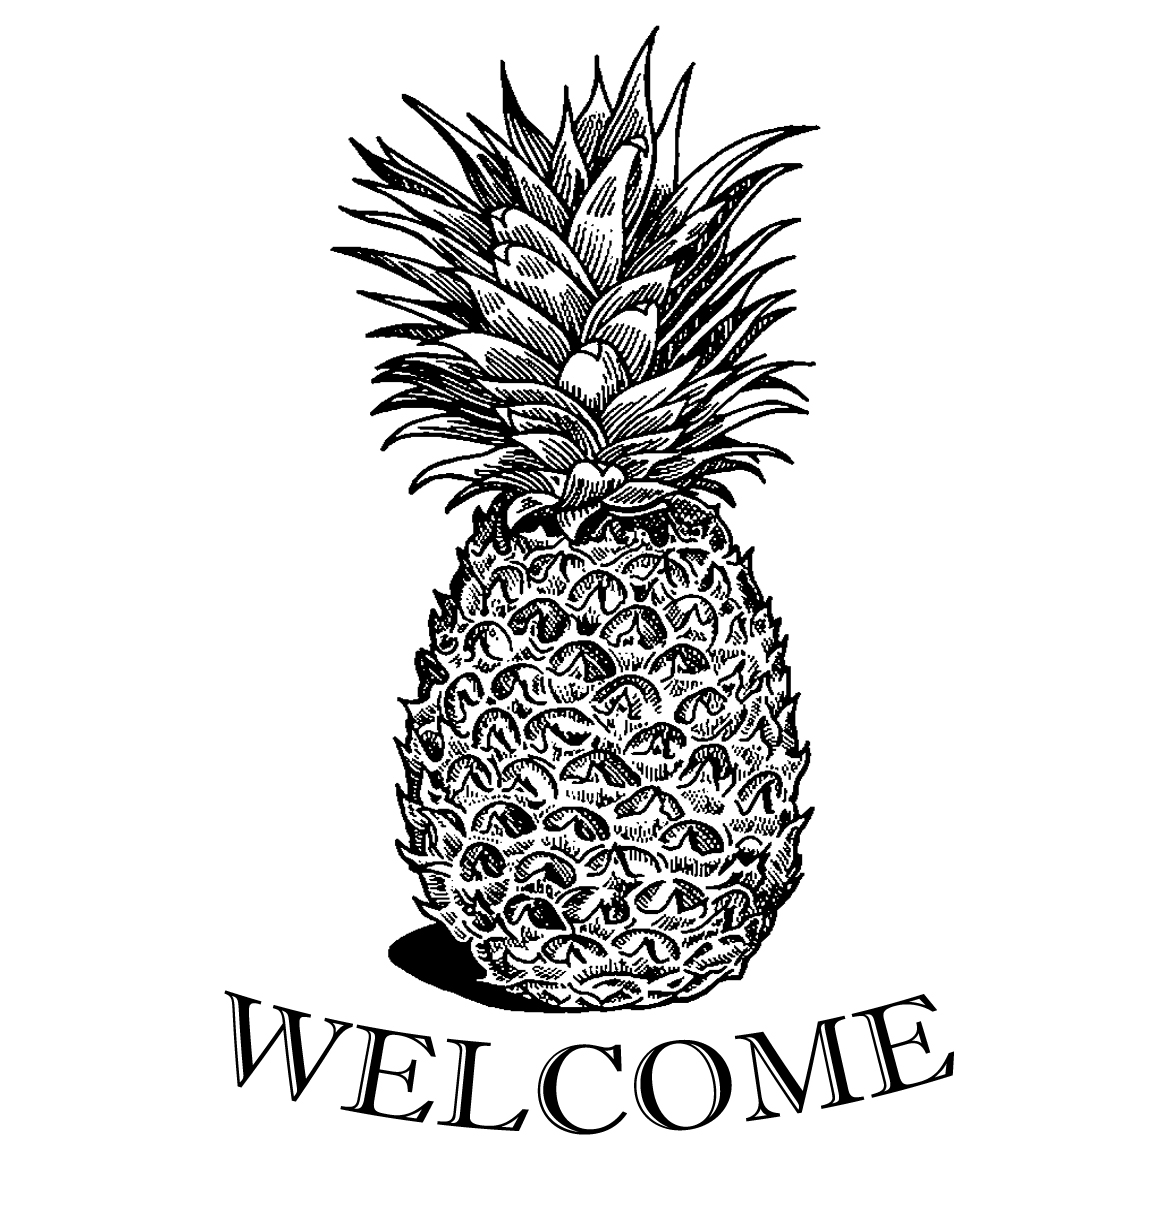 It's just a picture of Adorable Pineapple Stencil Printable